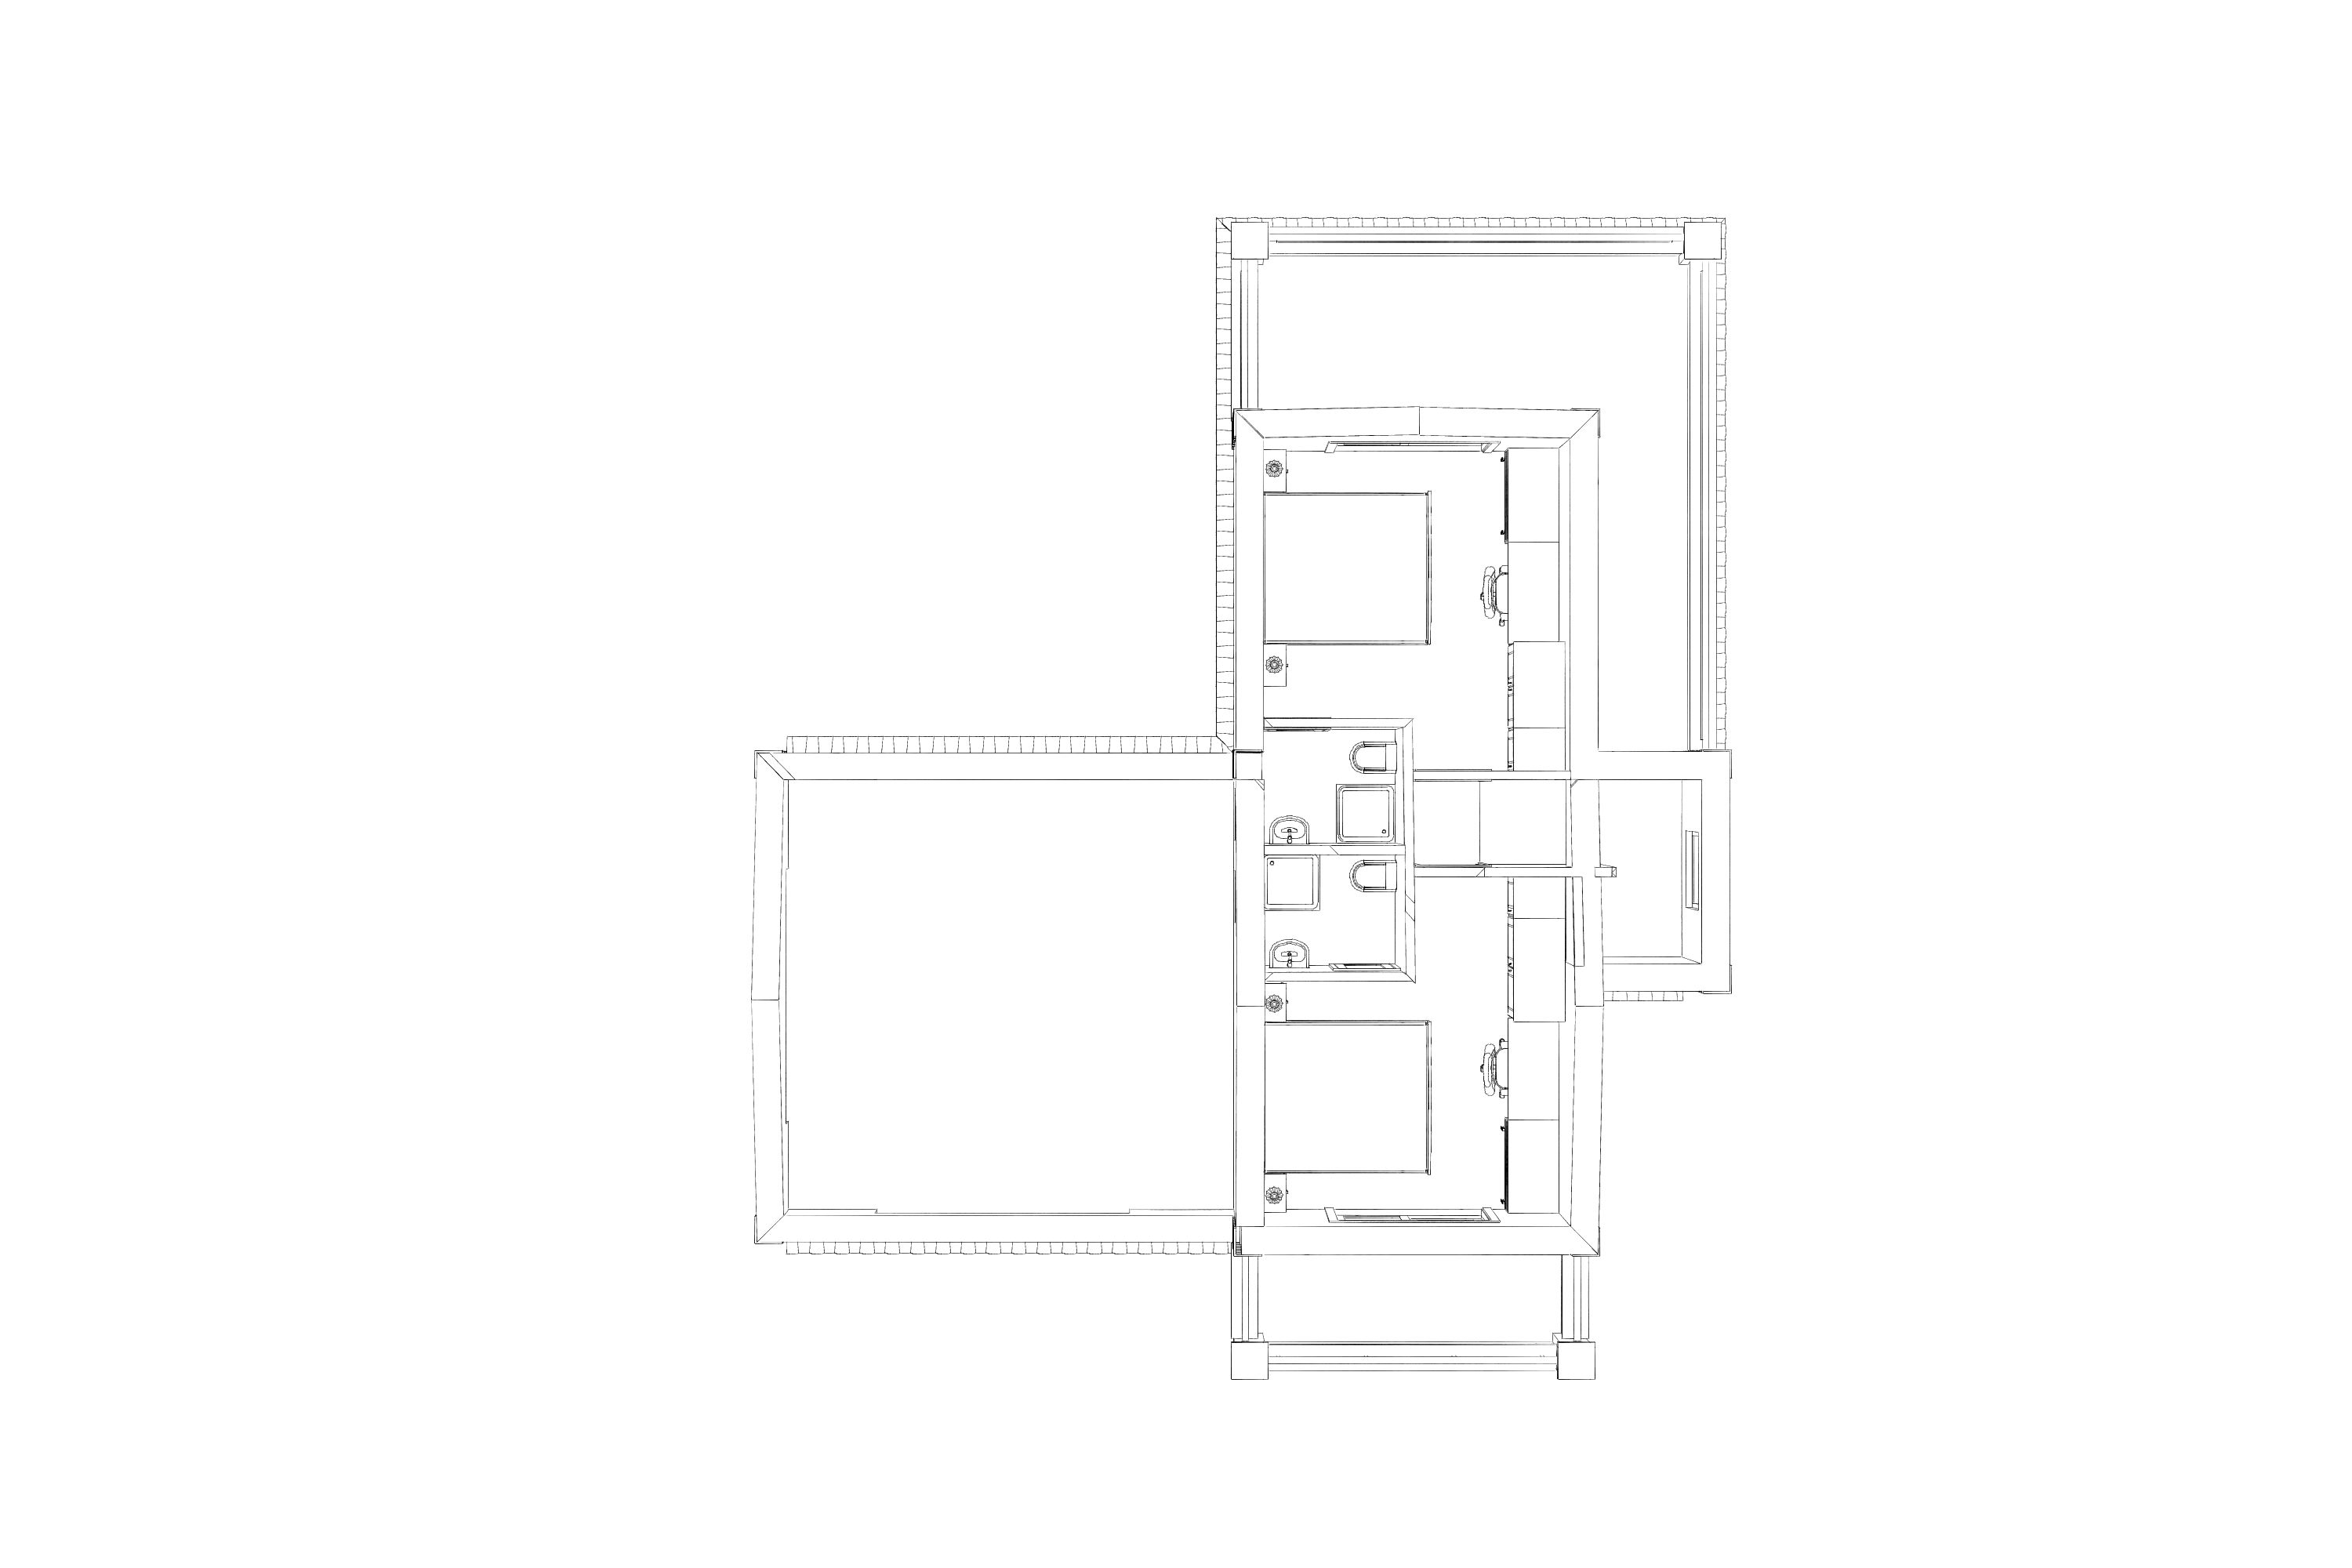 Paliouri-camera-05-sketch-1st-floor